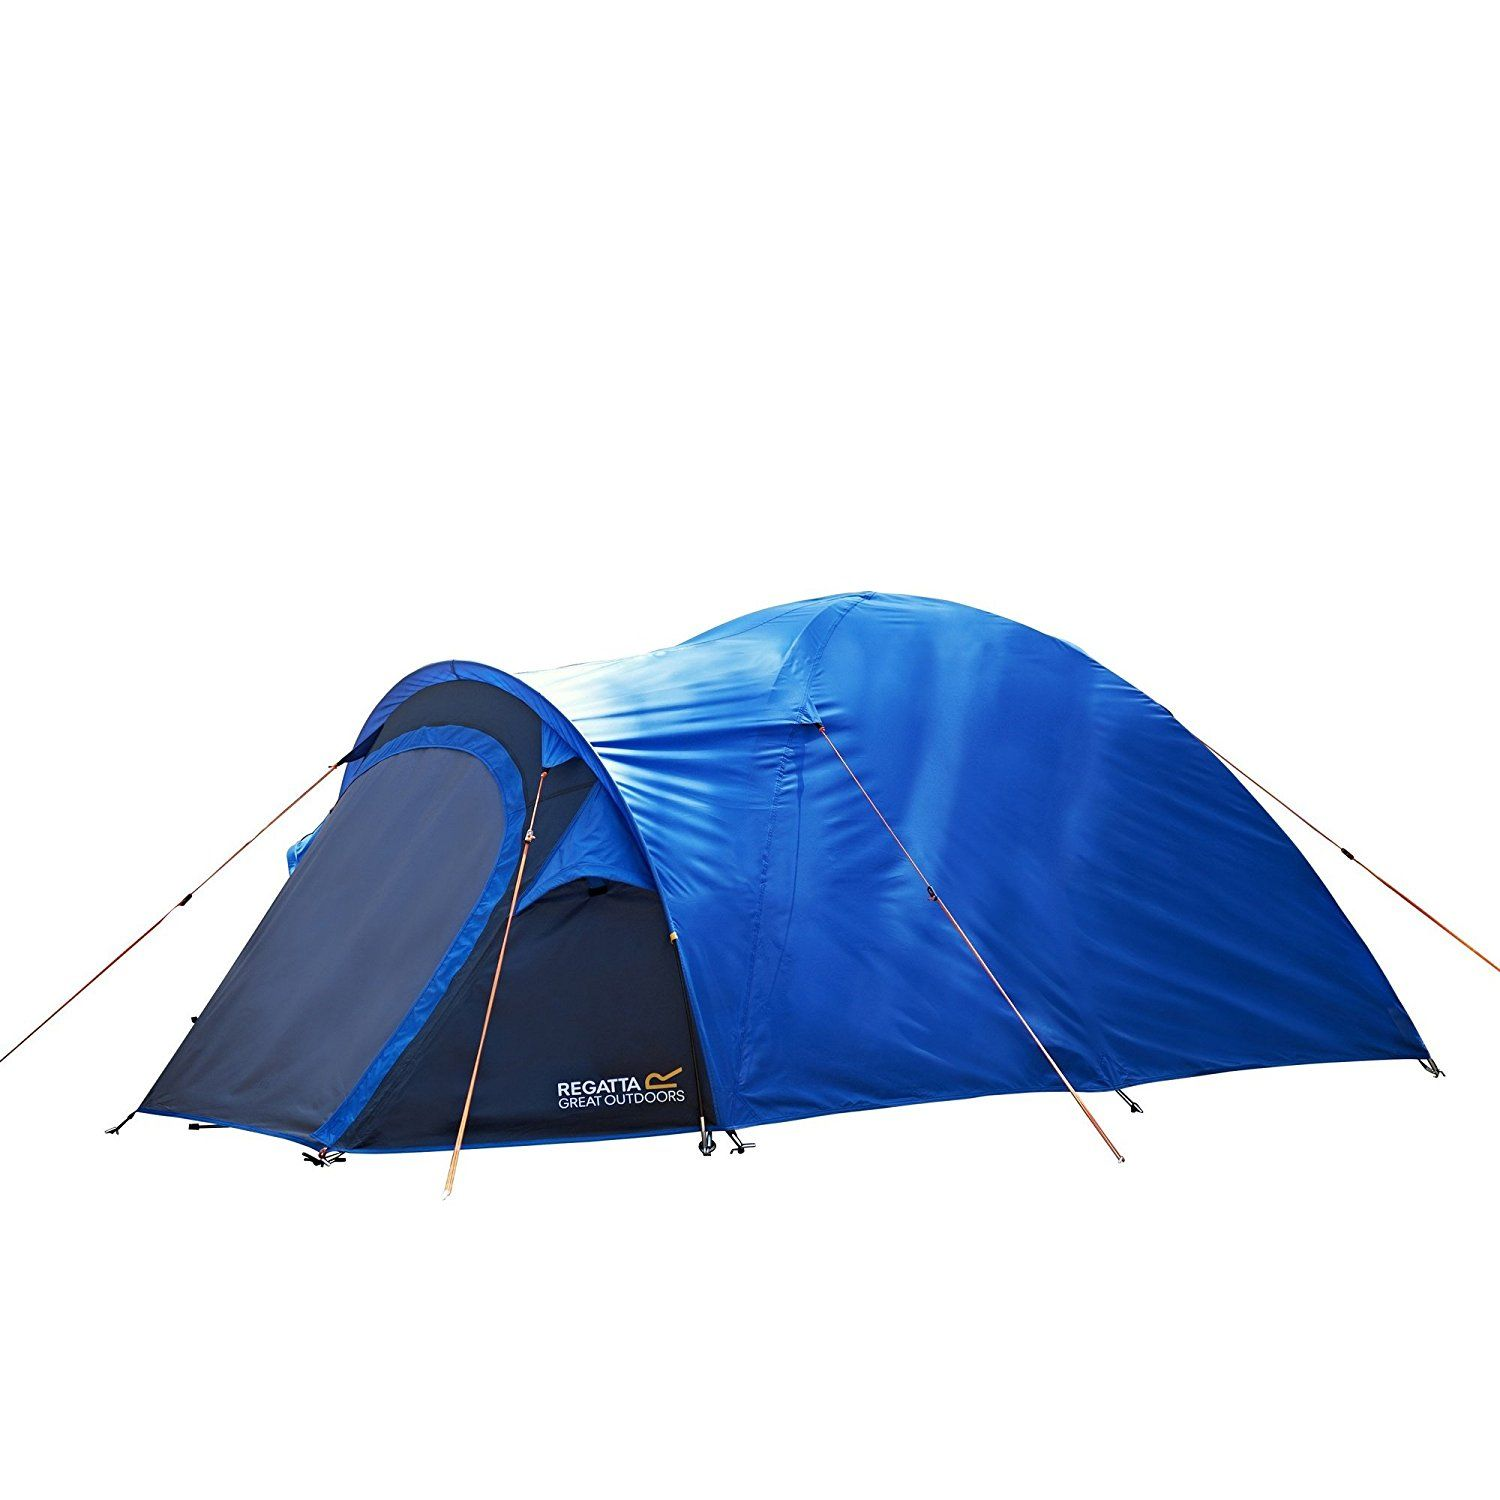 Regatta Great Outdoors Kivu 2 Man Dome Tent -- To view further visit now  sc 1 st  Pinterest & Regatta Great Outdoors Kivu 2 Man Dome Tent -- To view further ...